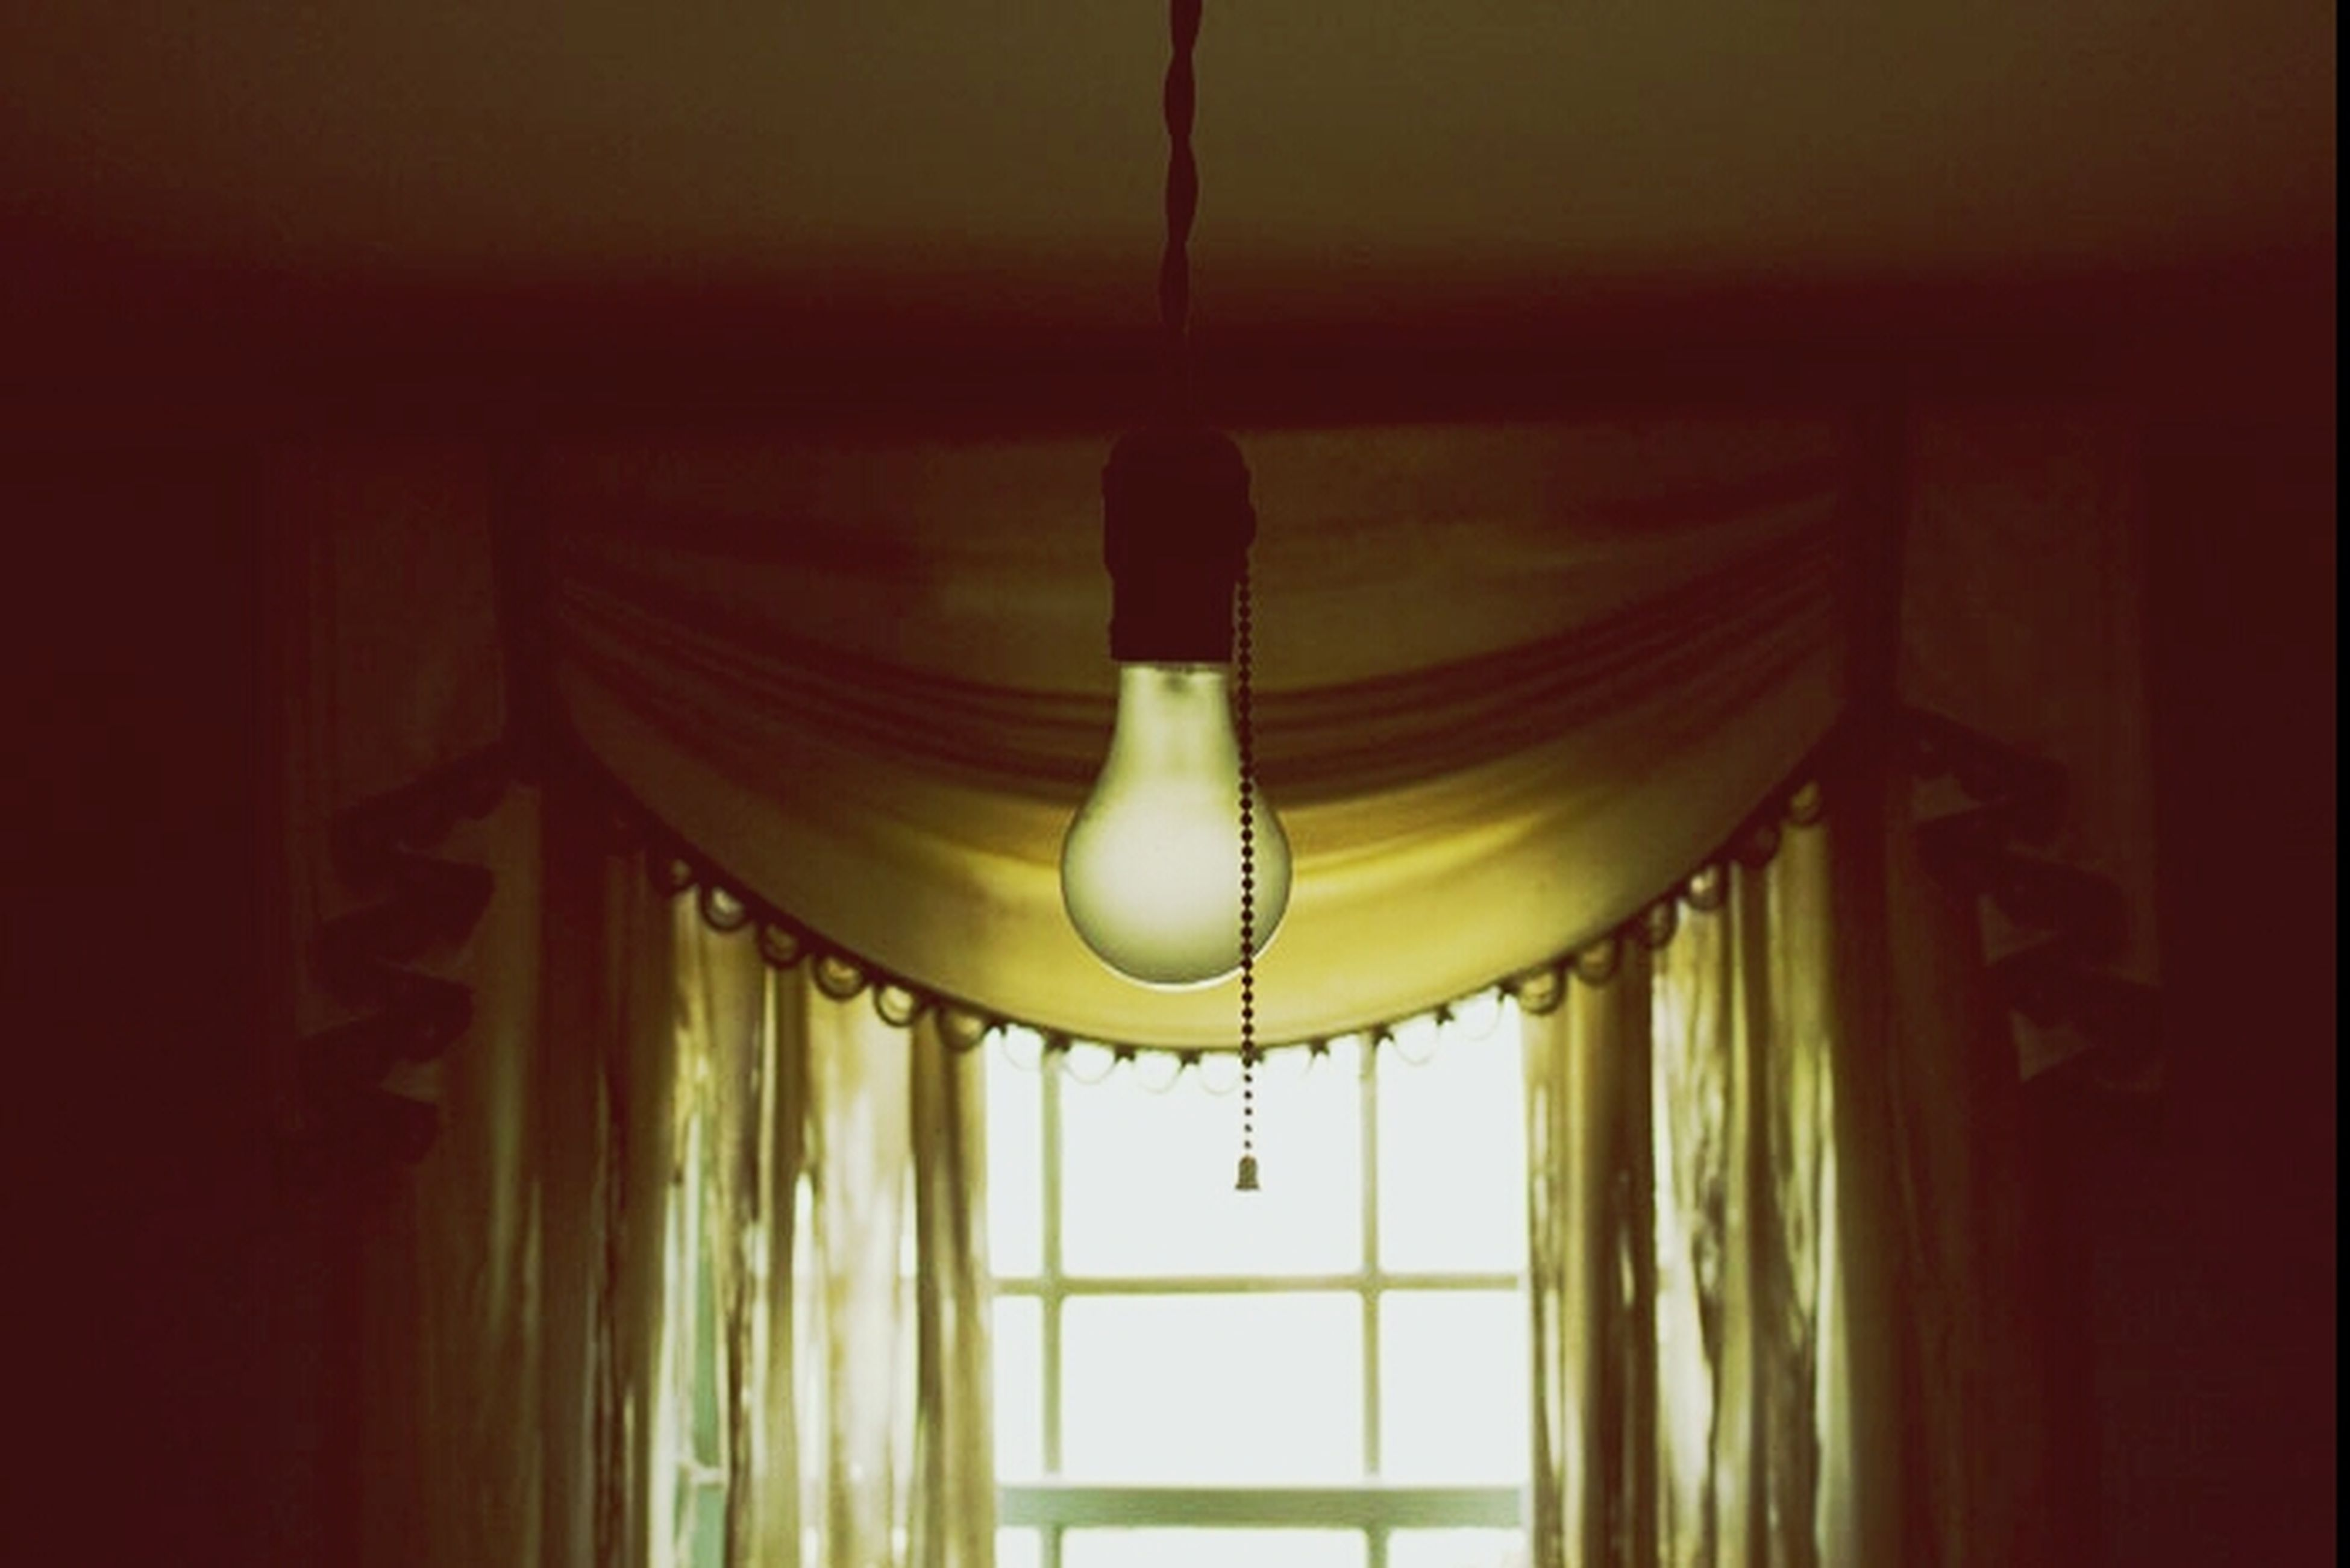 indoors, illuminated, ceiling, lighting equipment, hanging, home interior, curtain, architecture, window, electric lamp, built structure, house, door, chandelier, lamp, wall - building feature, decoration, no people, light - natural phenomenon, electric light